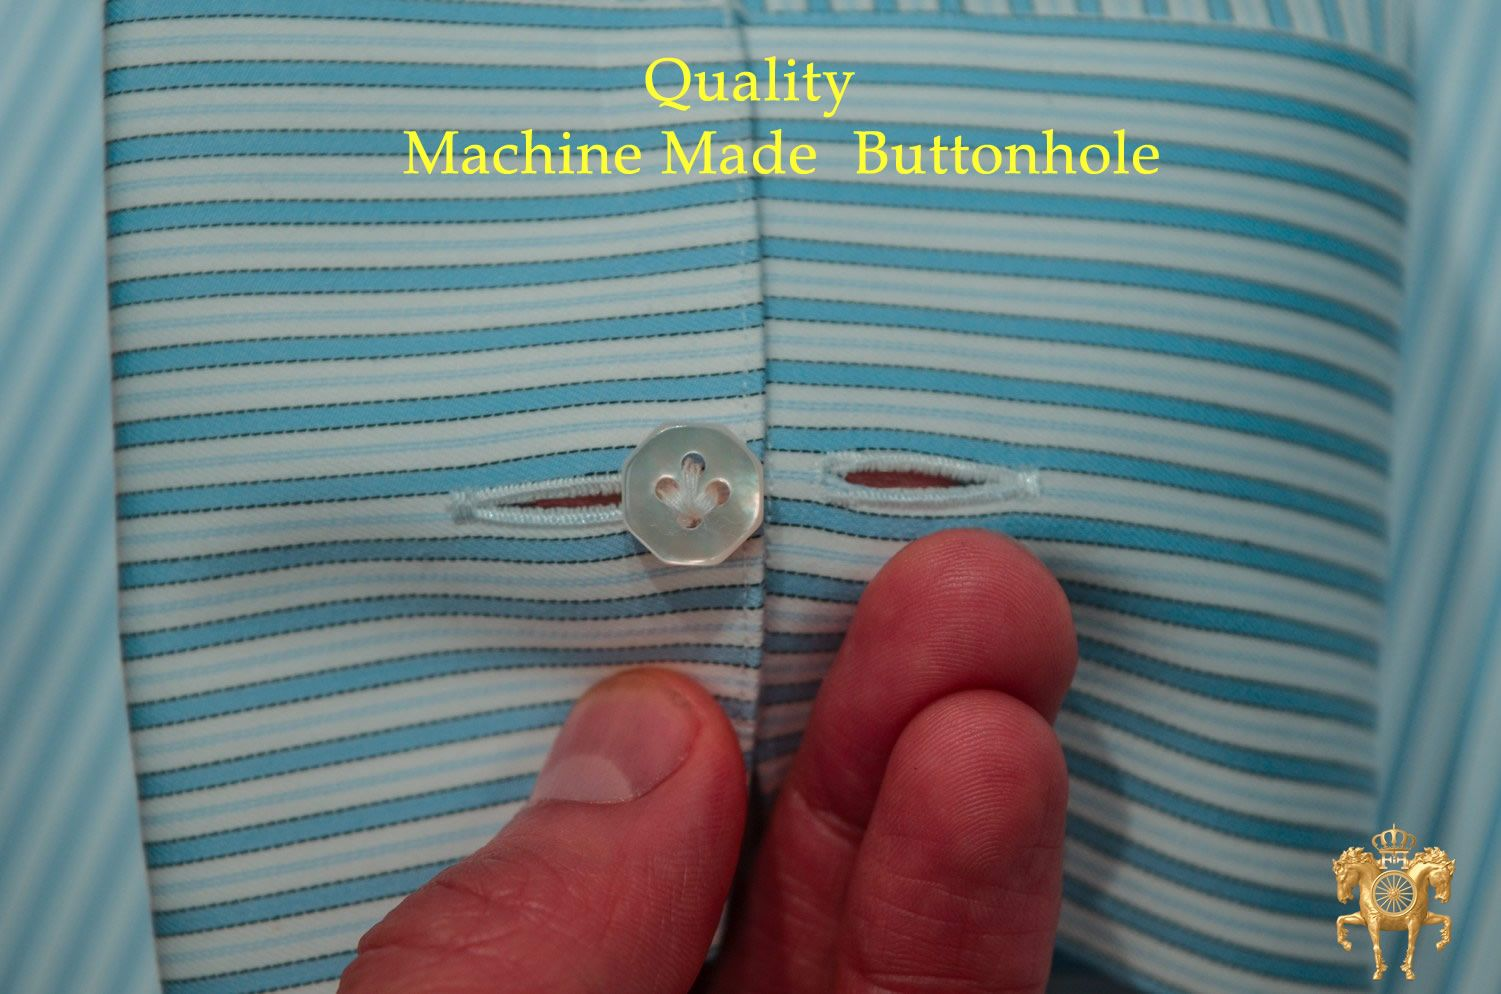 QUALITY MACHINE MADE BUTTONHOLE